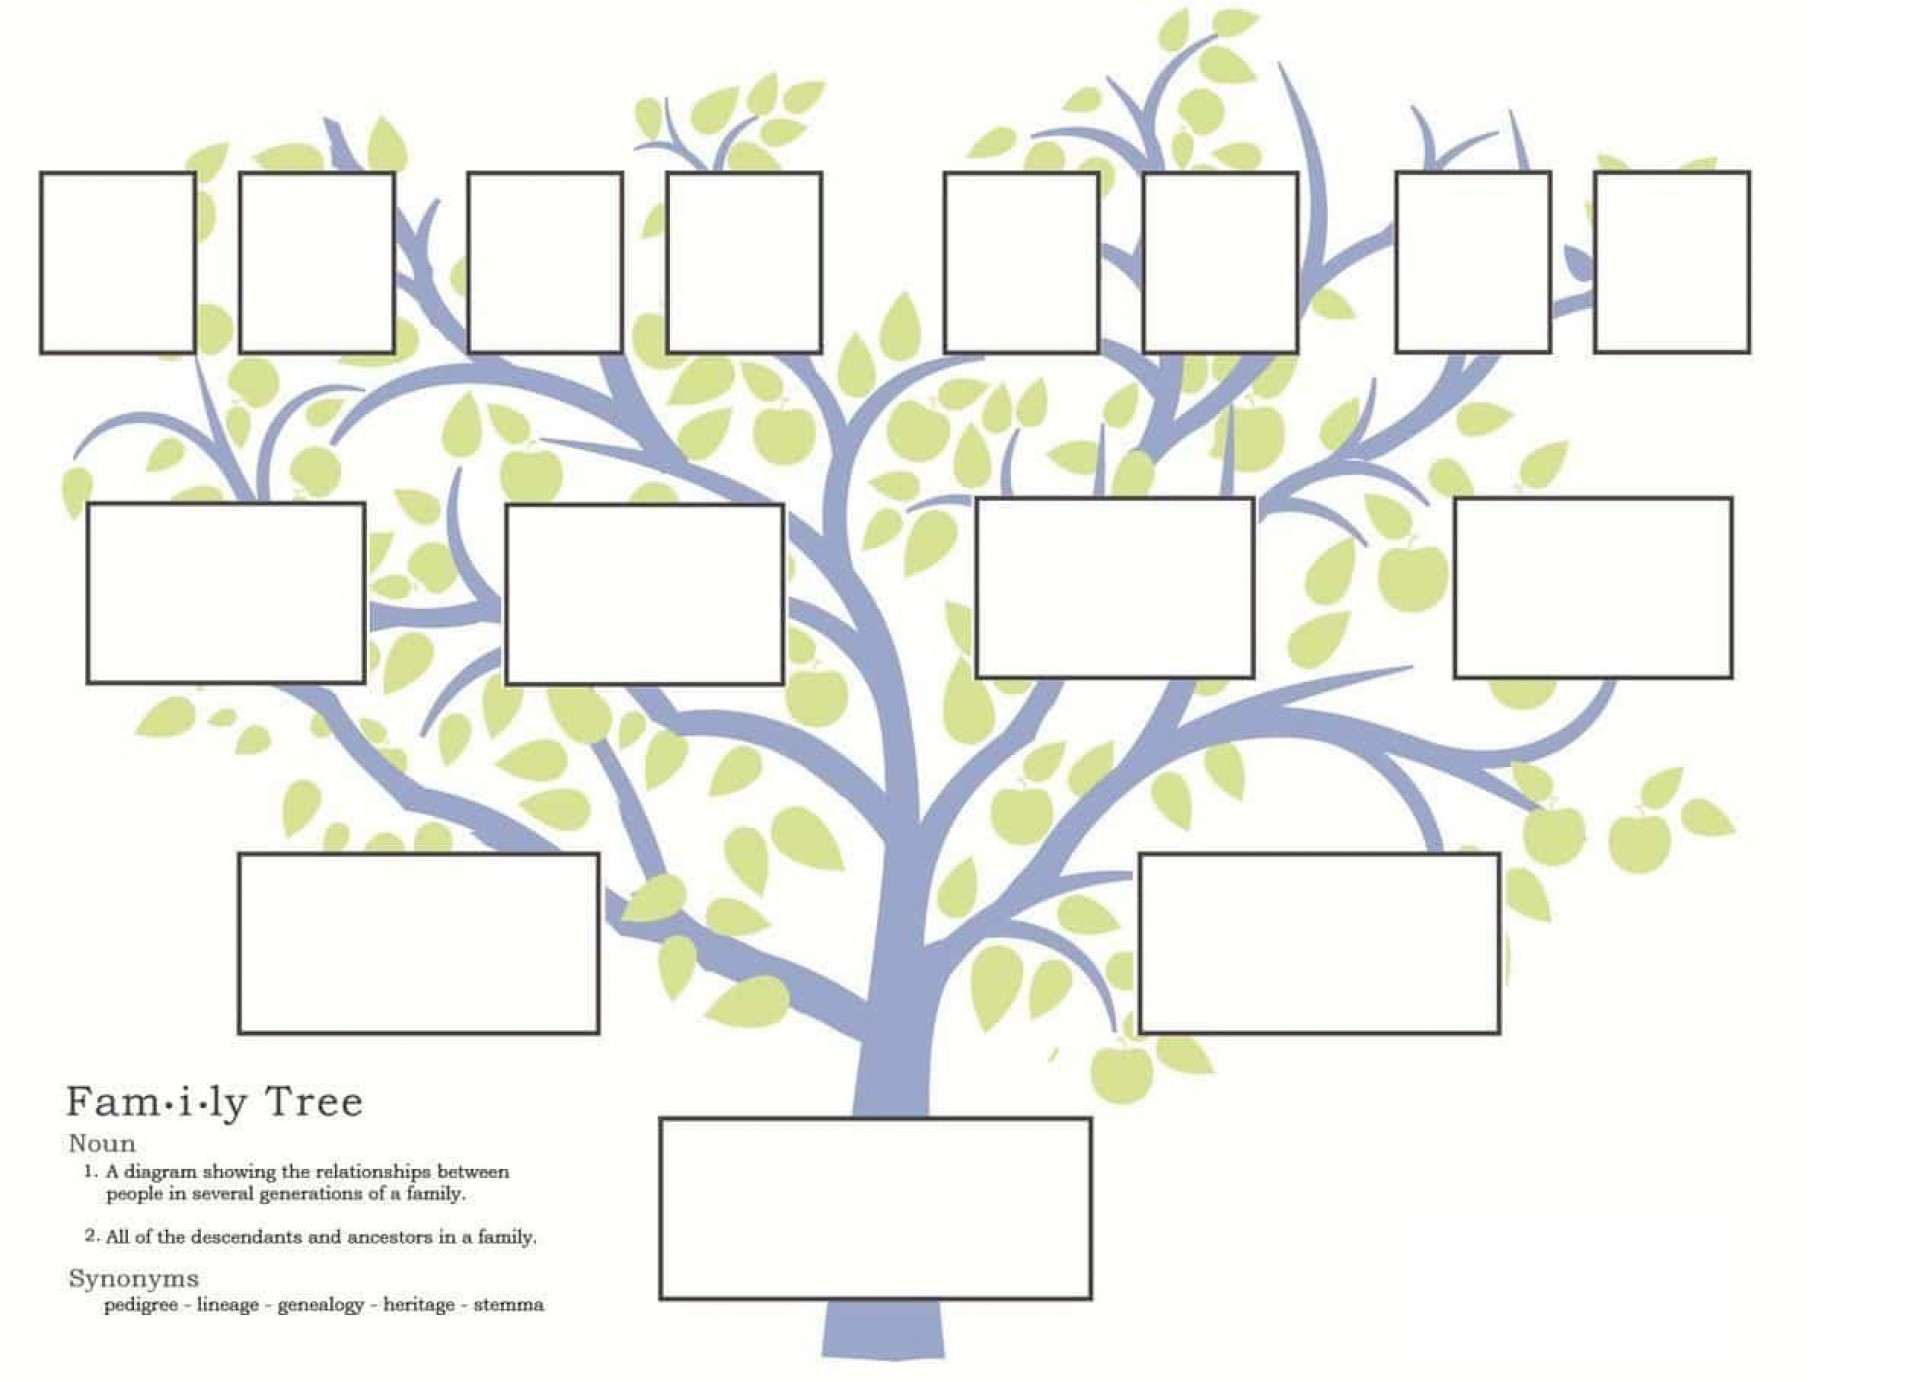 007 Exceptional Free Editable Family Tree Template High Resolution  With Sibling Powerpoint For Mac1920